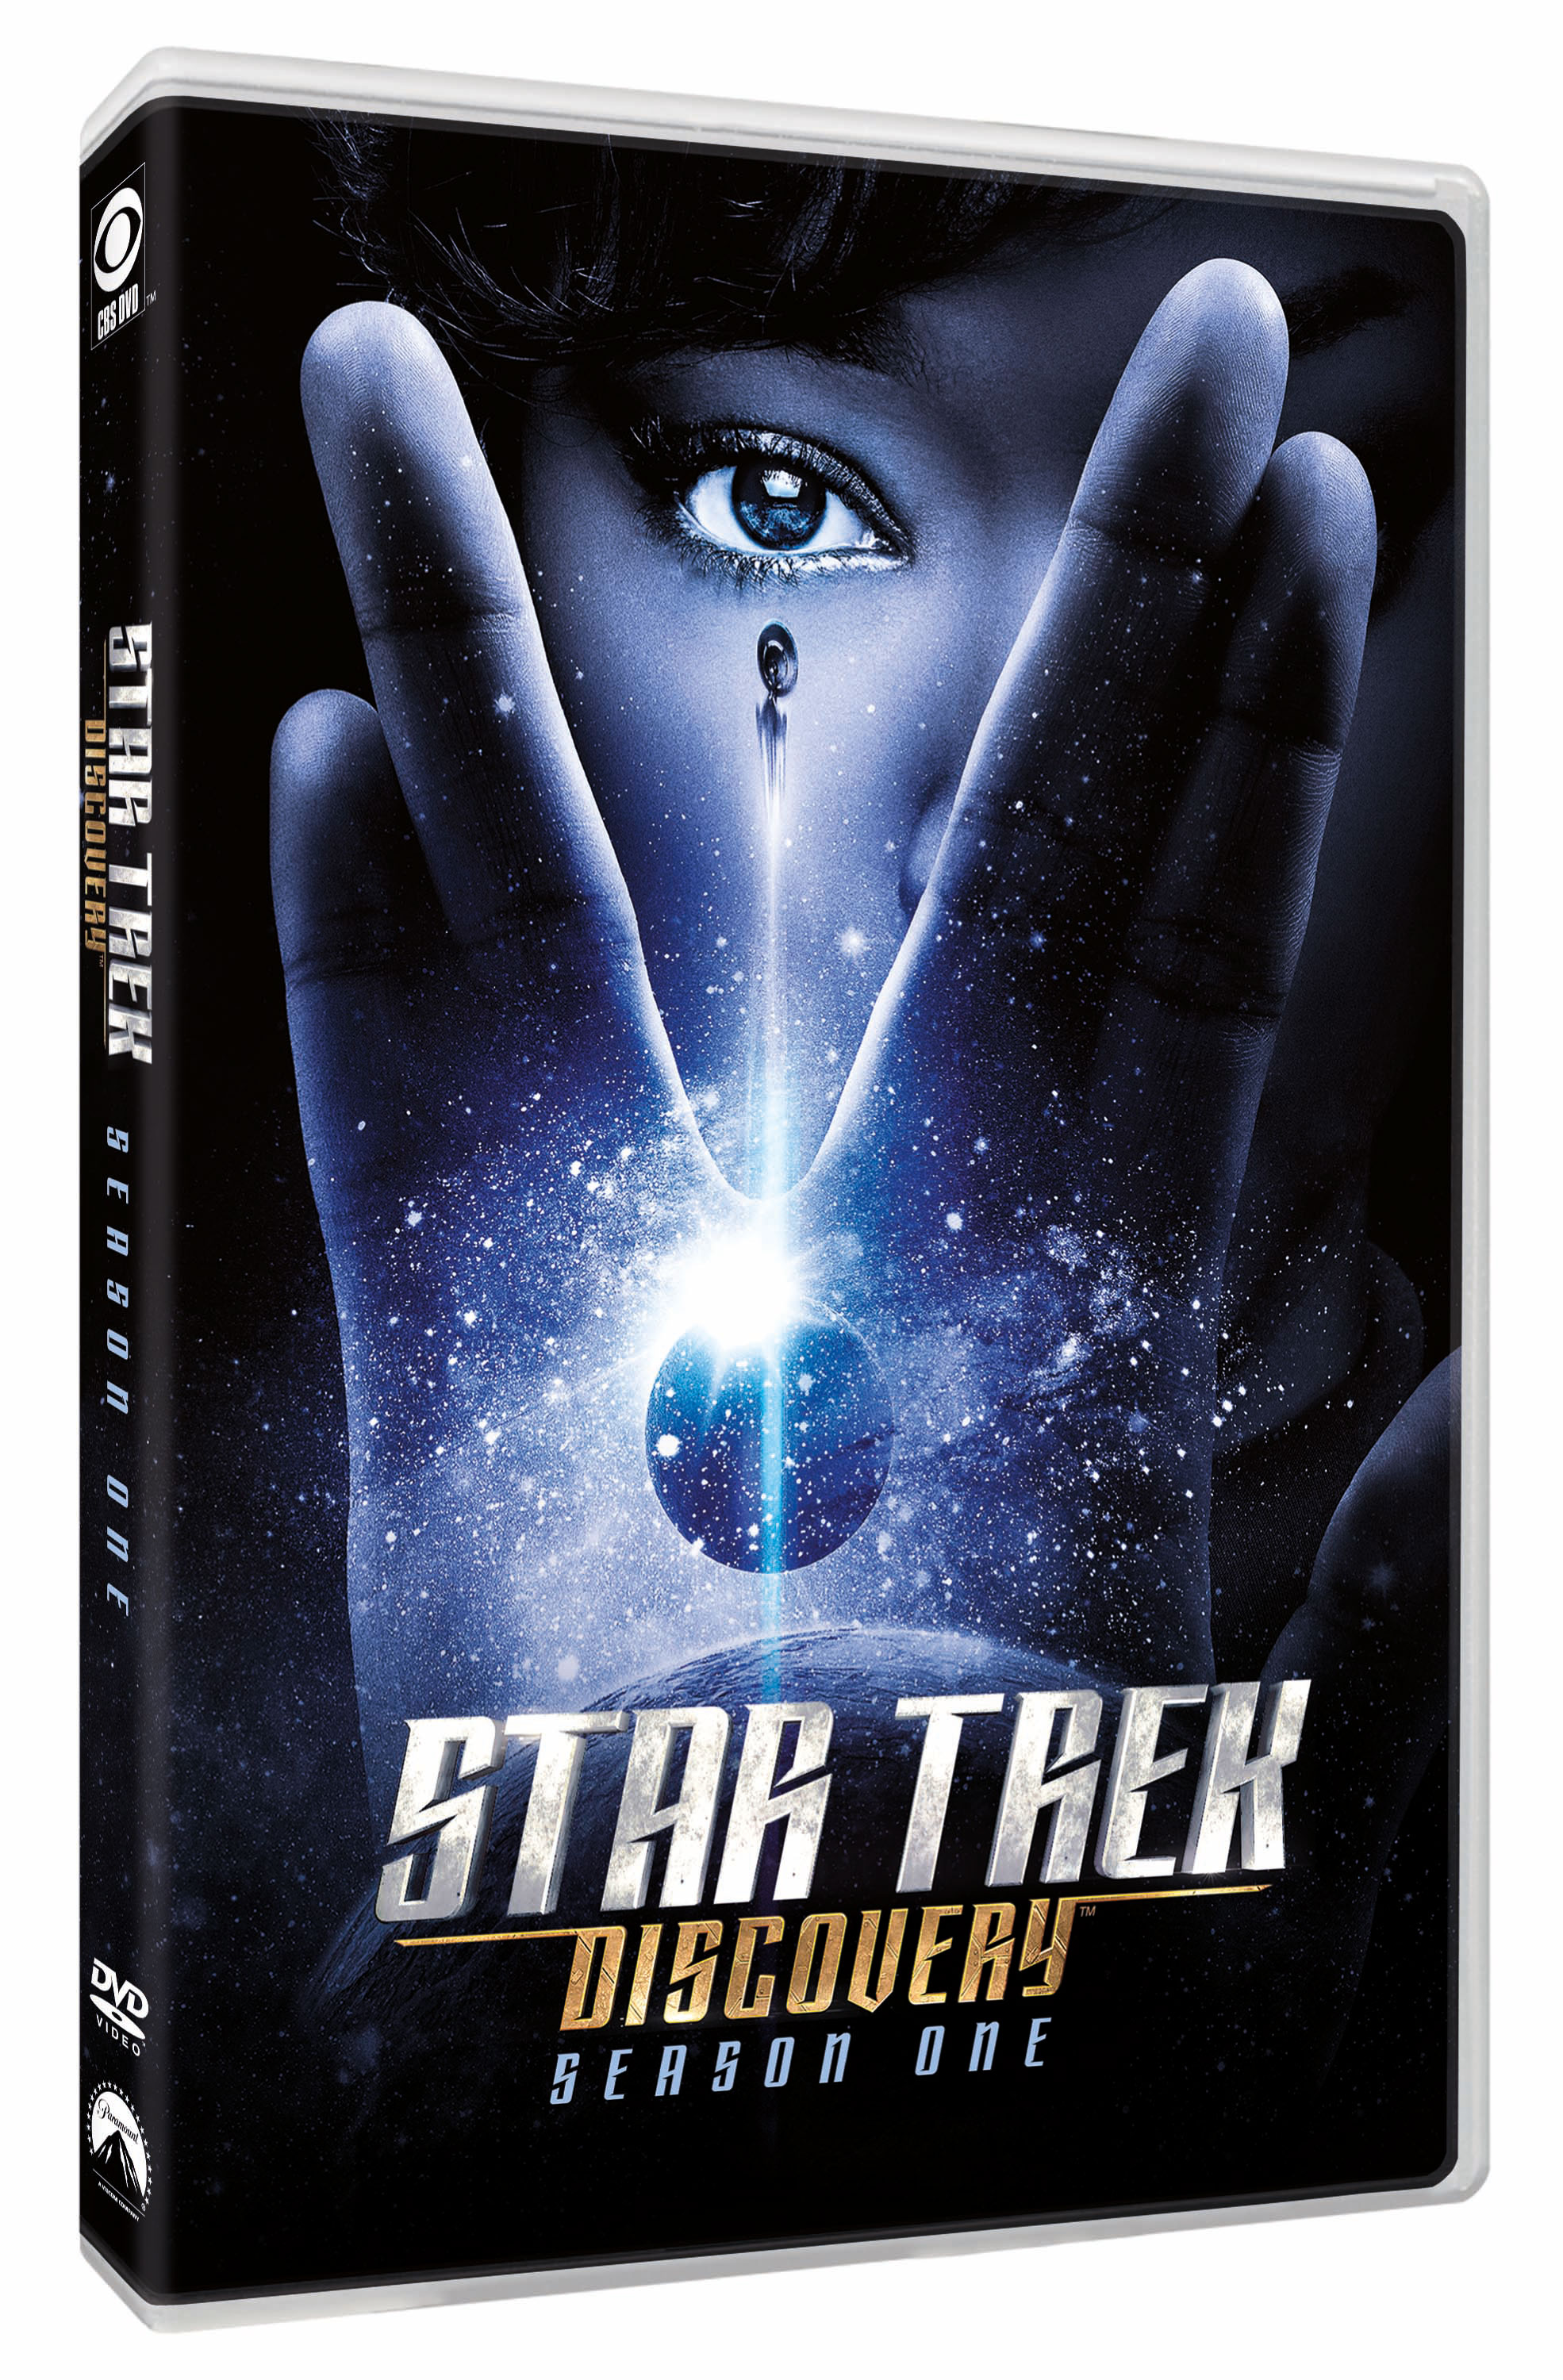 'Star Trek: Discovery' Dvd